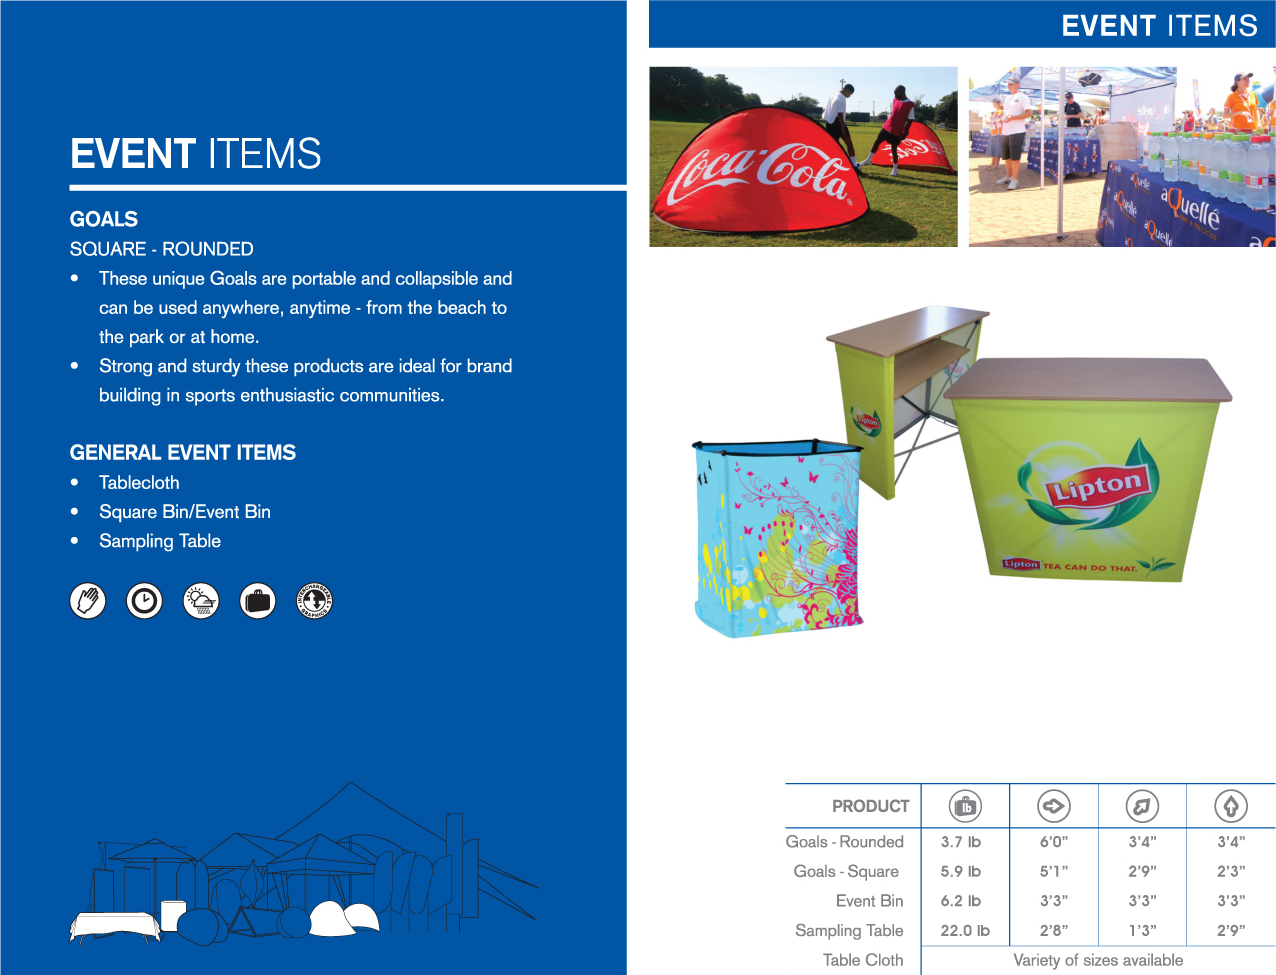 20121009120525_29-event-items-a